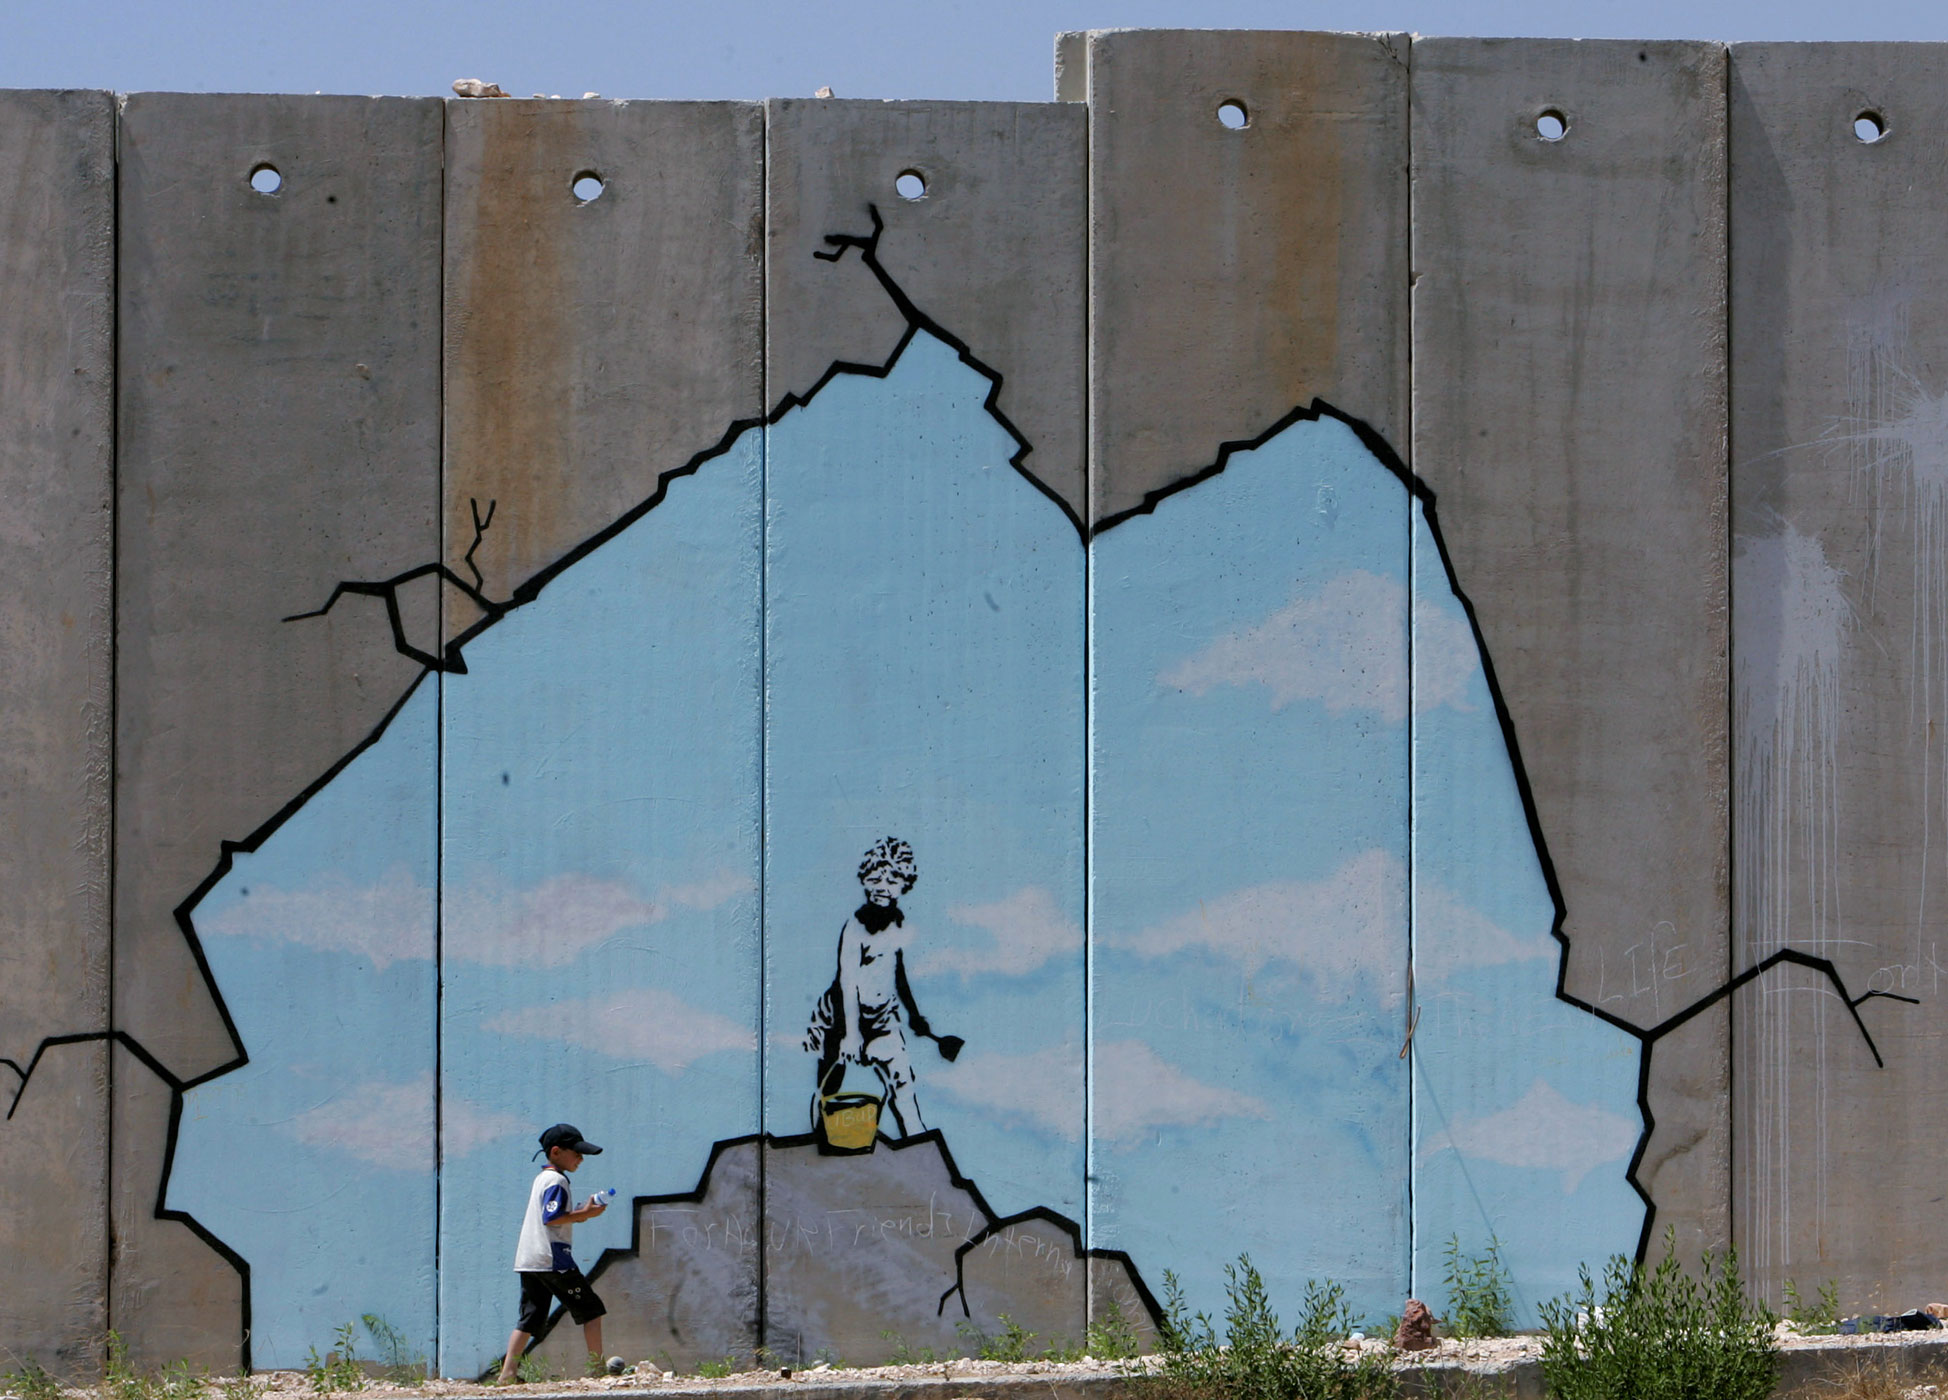 A Palestinian boy walks past a work by Banksy near the Kalandia checkpoint in the West Bank on August 10, 2005.